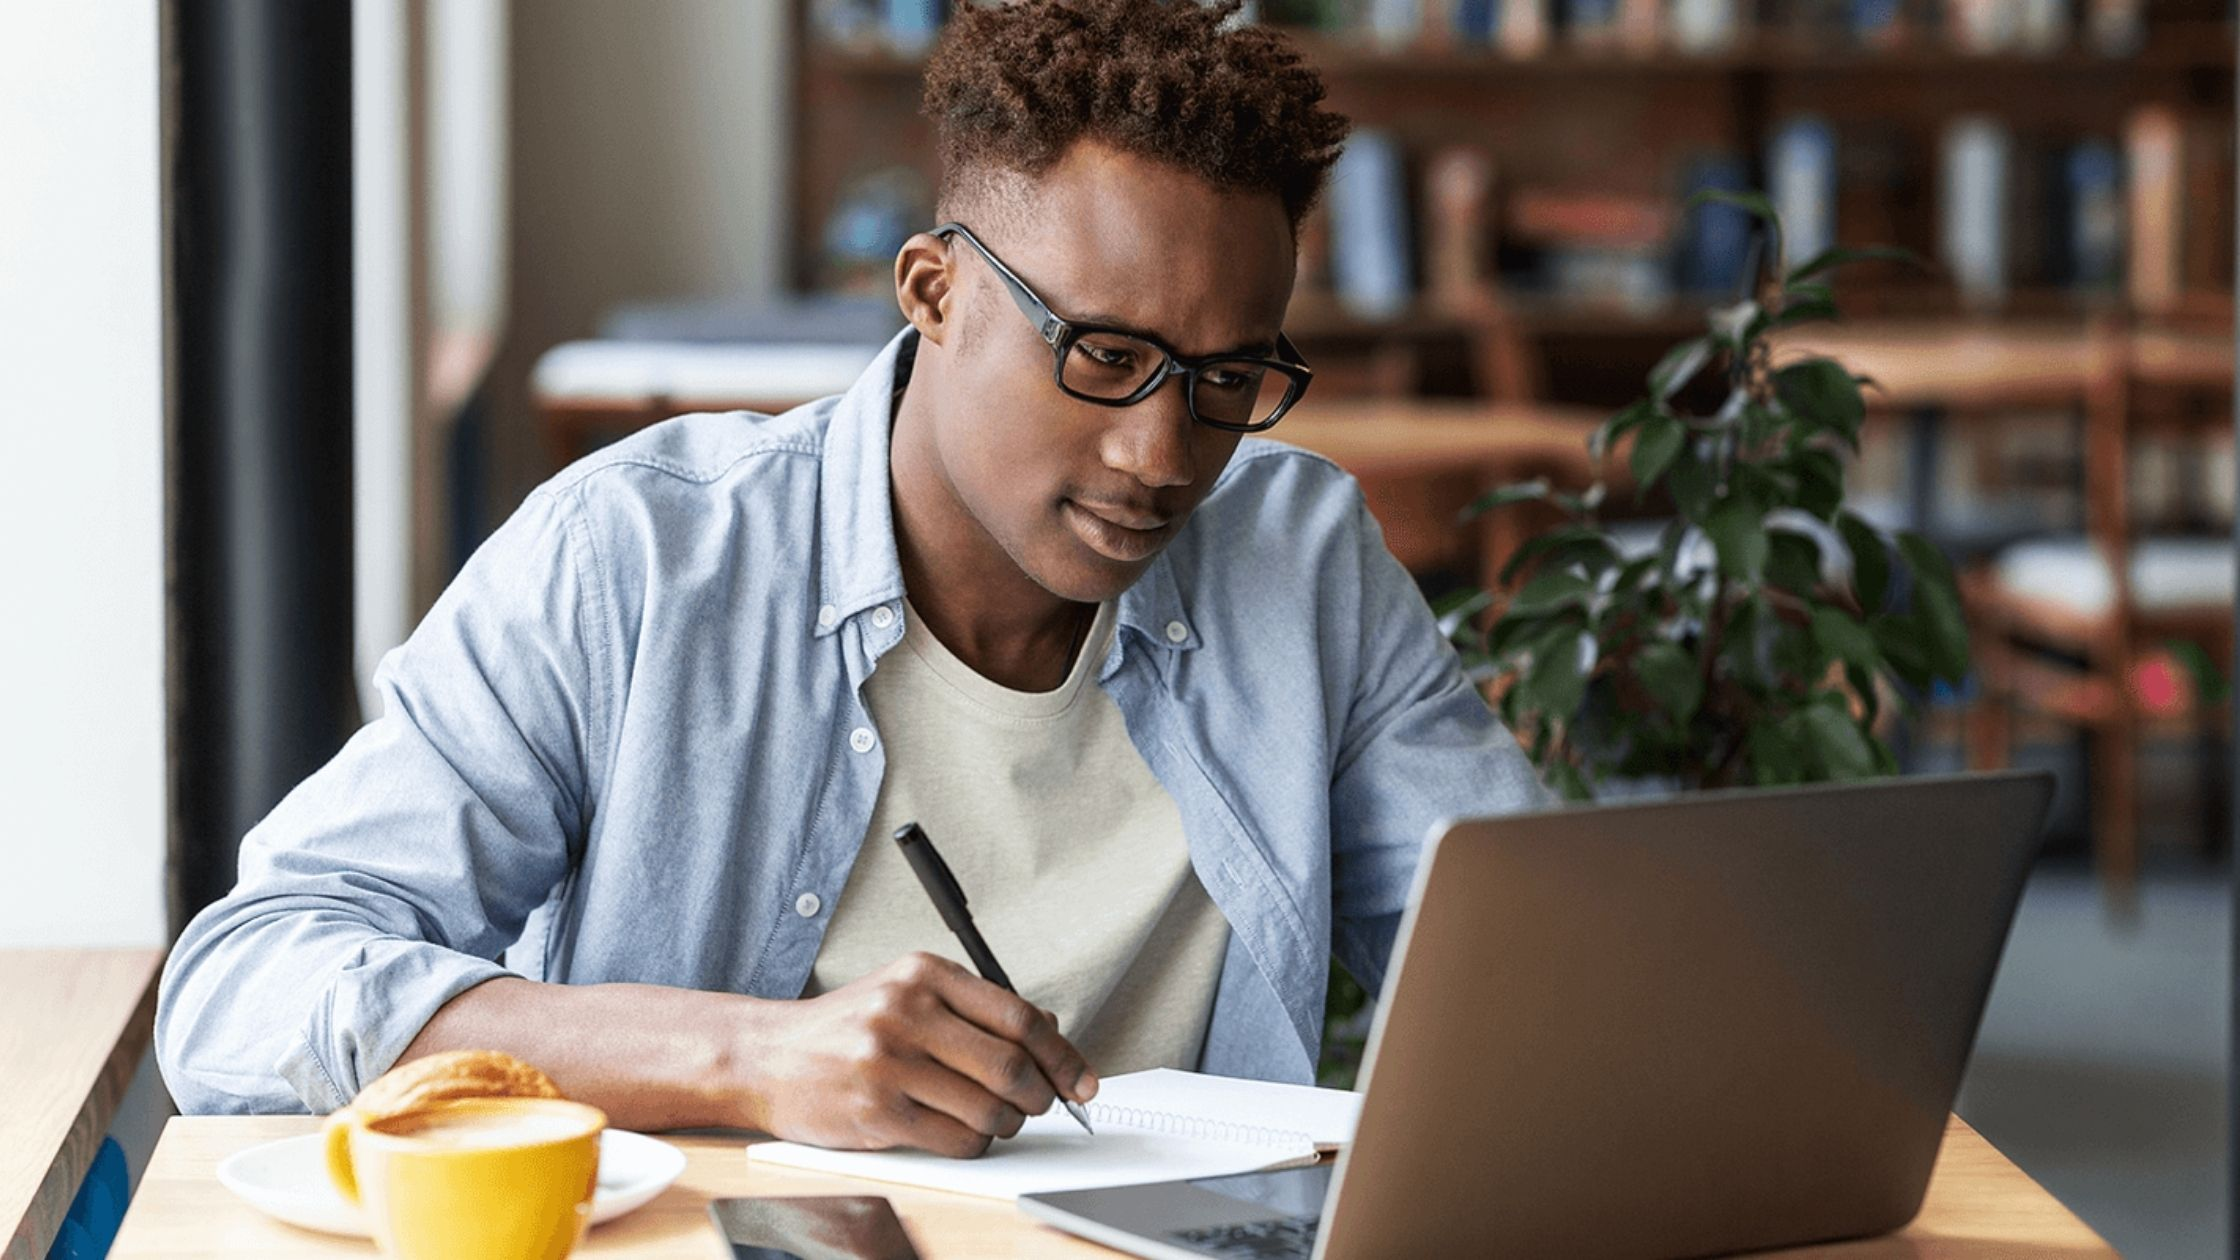 How to make money on fiverr in Nigeria as a Freelancer